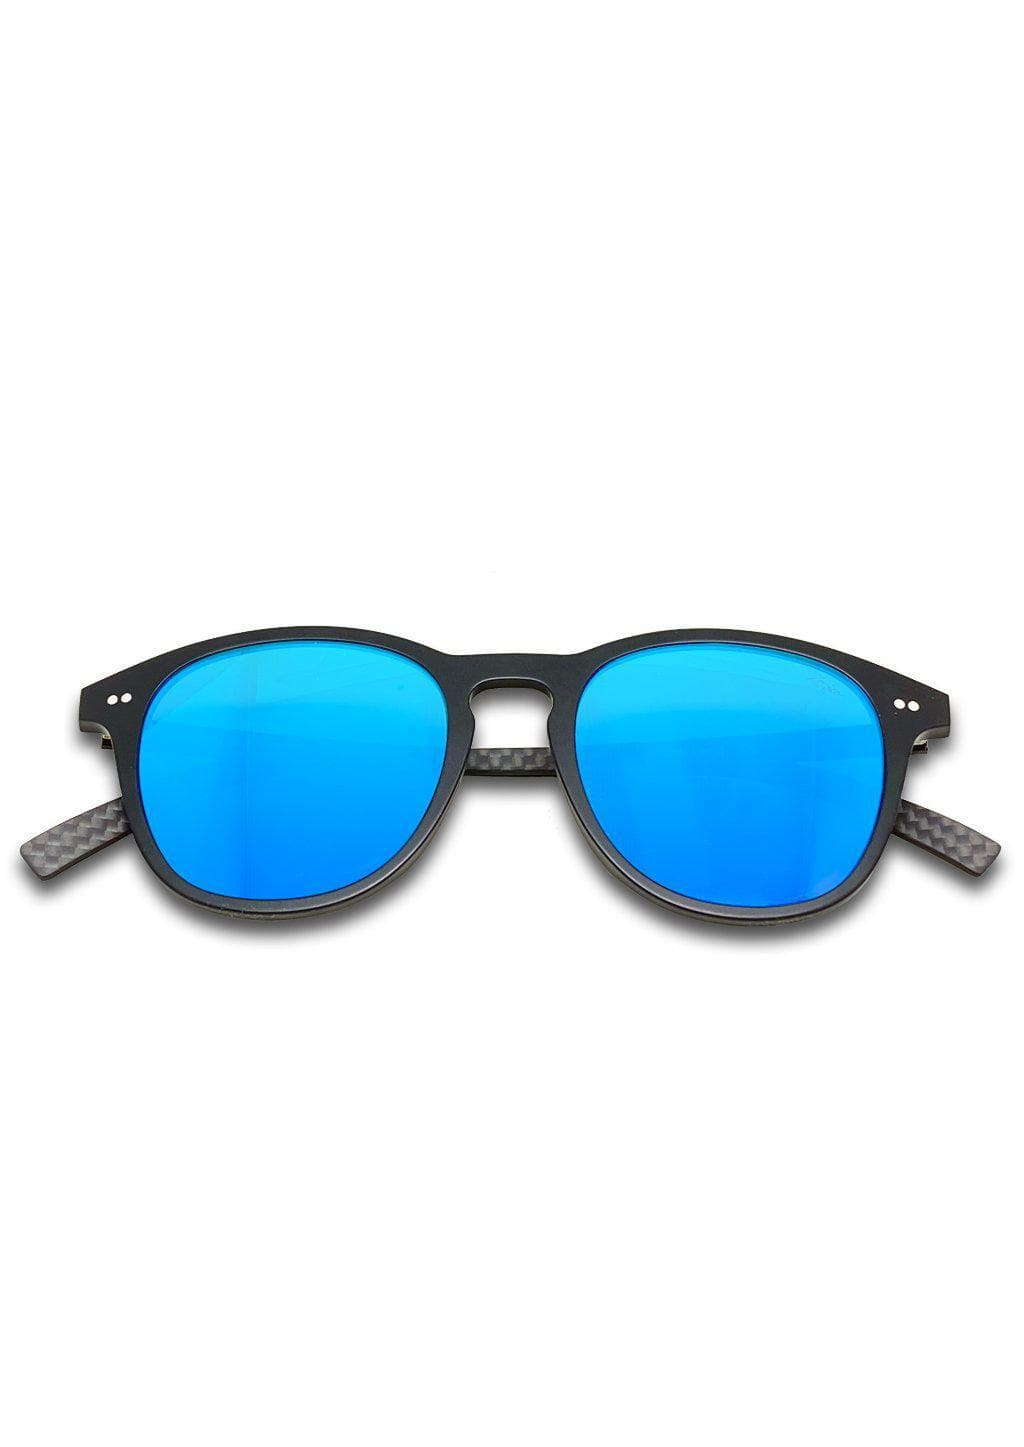 Hybrid - Halo, carbon fiber and acetate sunglasses of the highest quality. Black frame with blue mirror lenses.